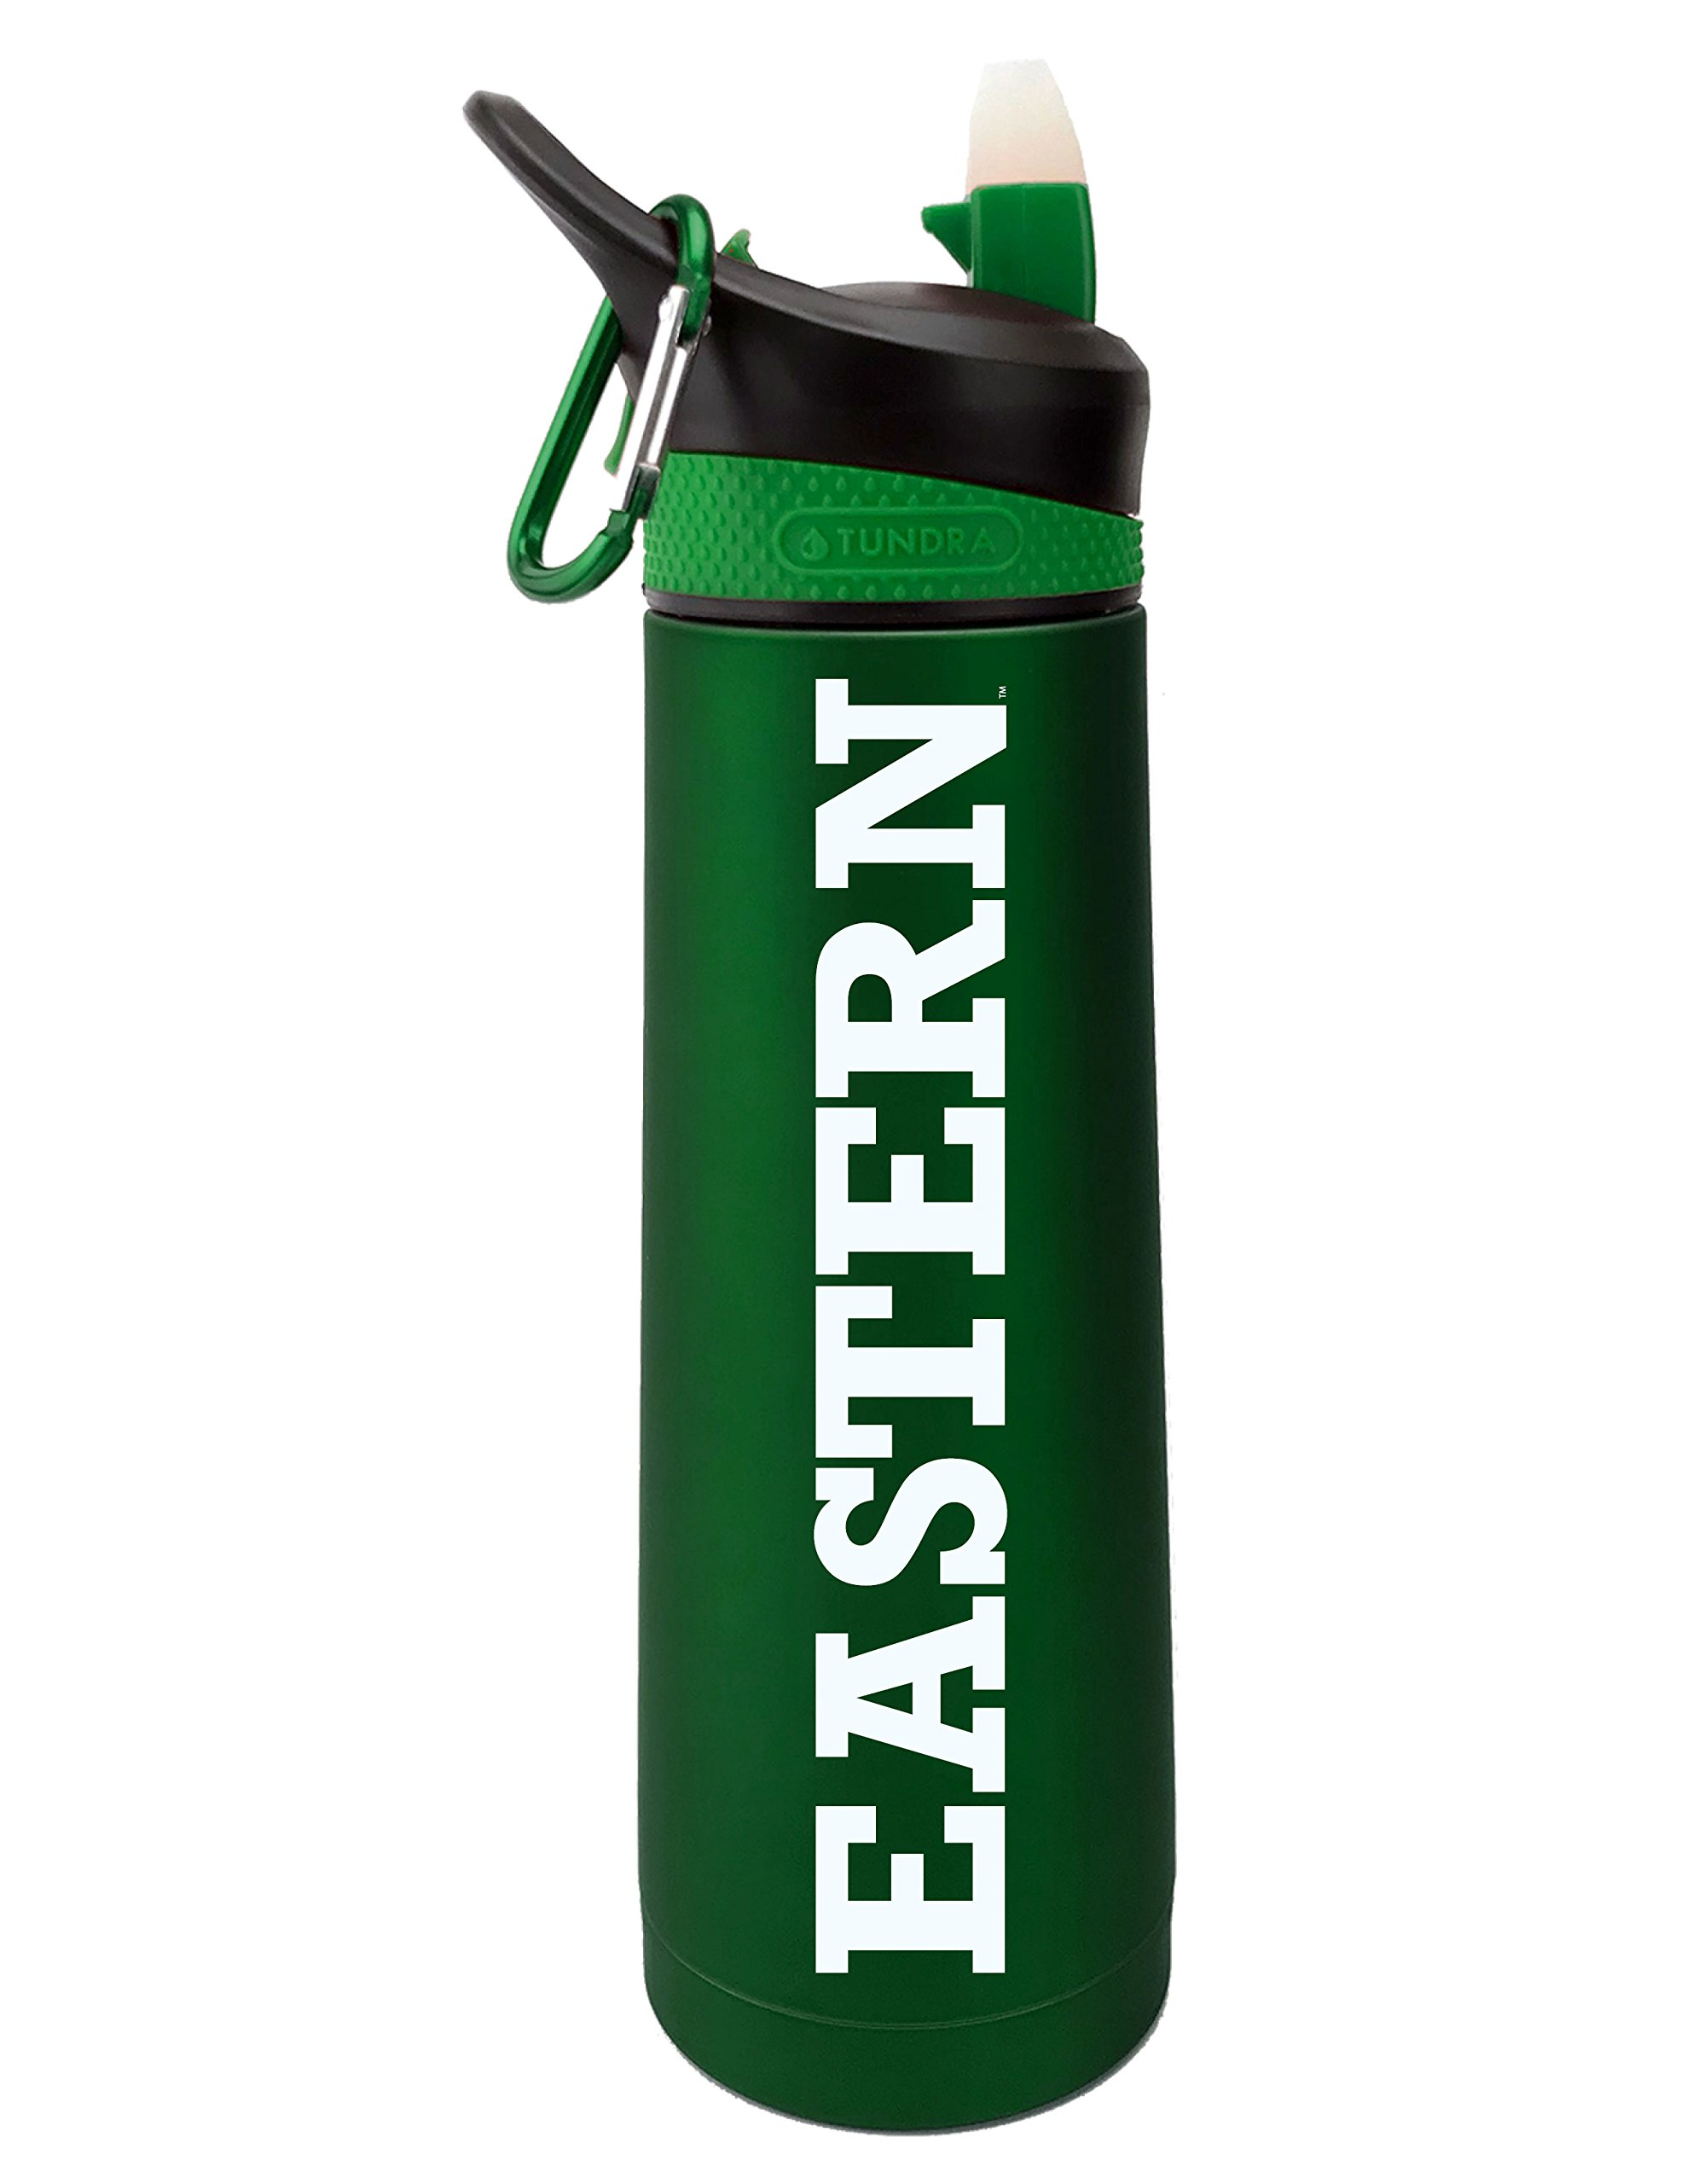 Fanatic Group Eastern Michigan University Dual Walled Stainless Steel Sports Bottle, Design 1 - Green